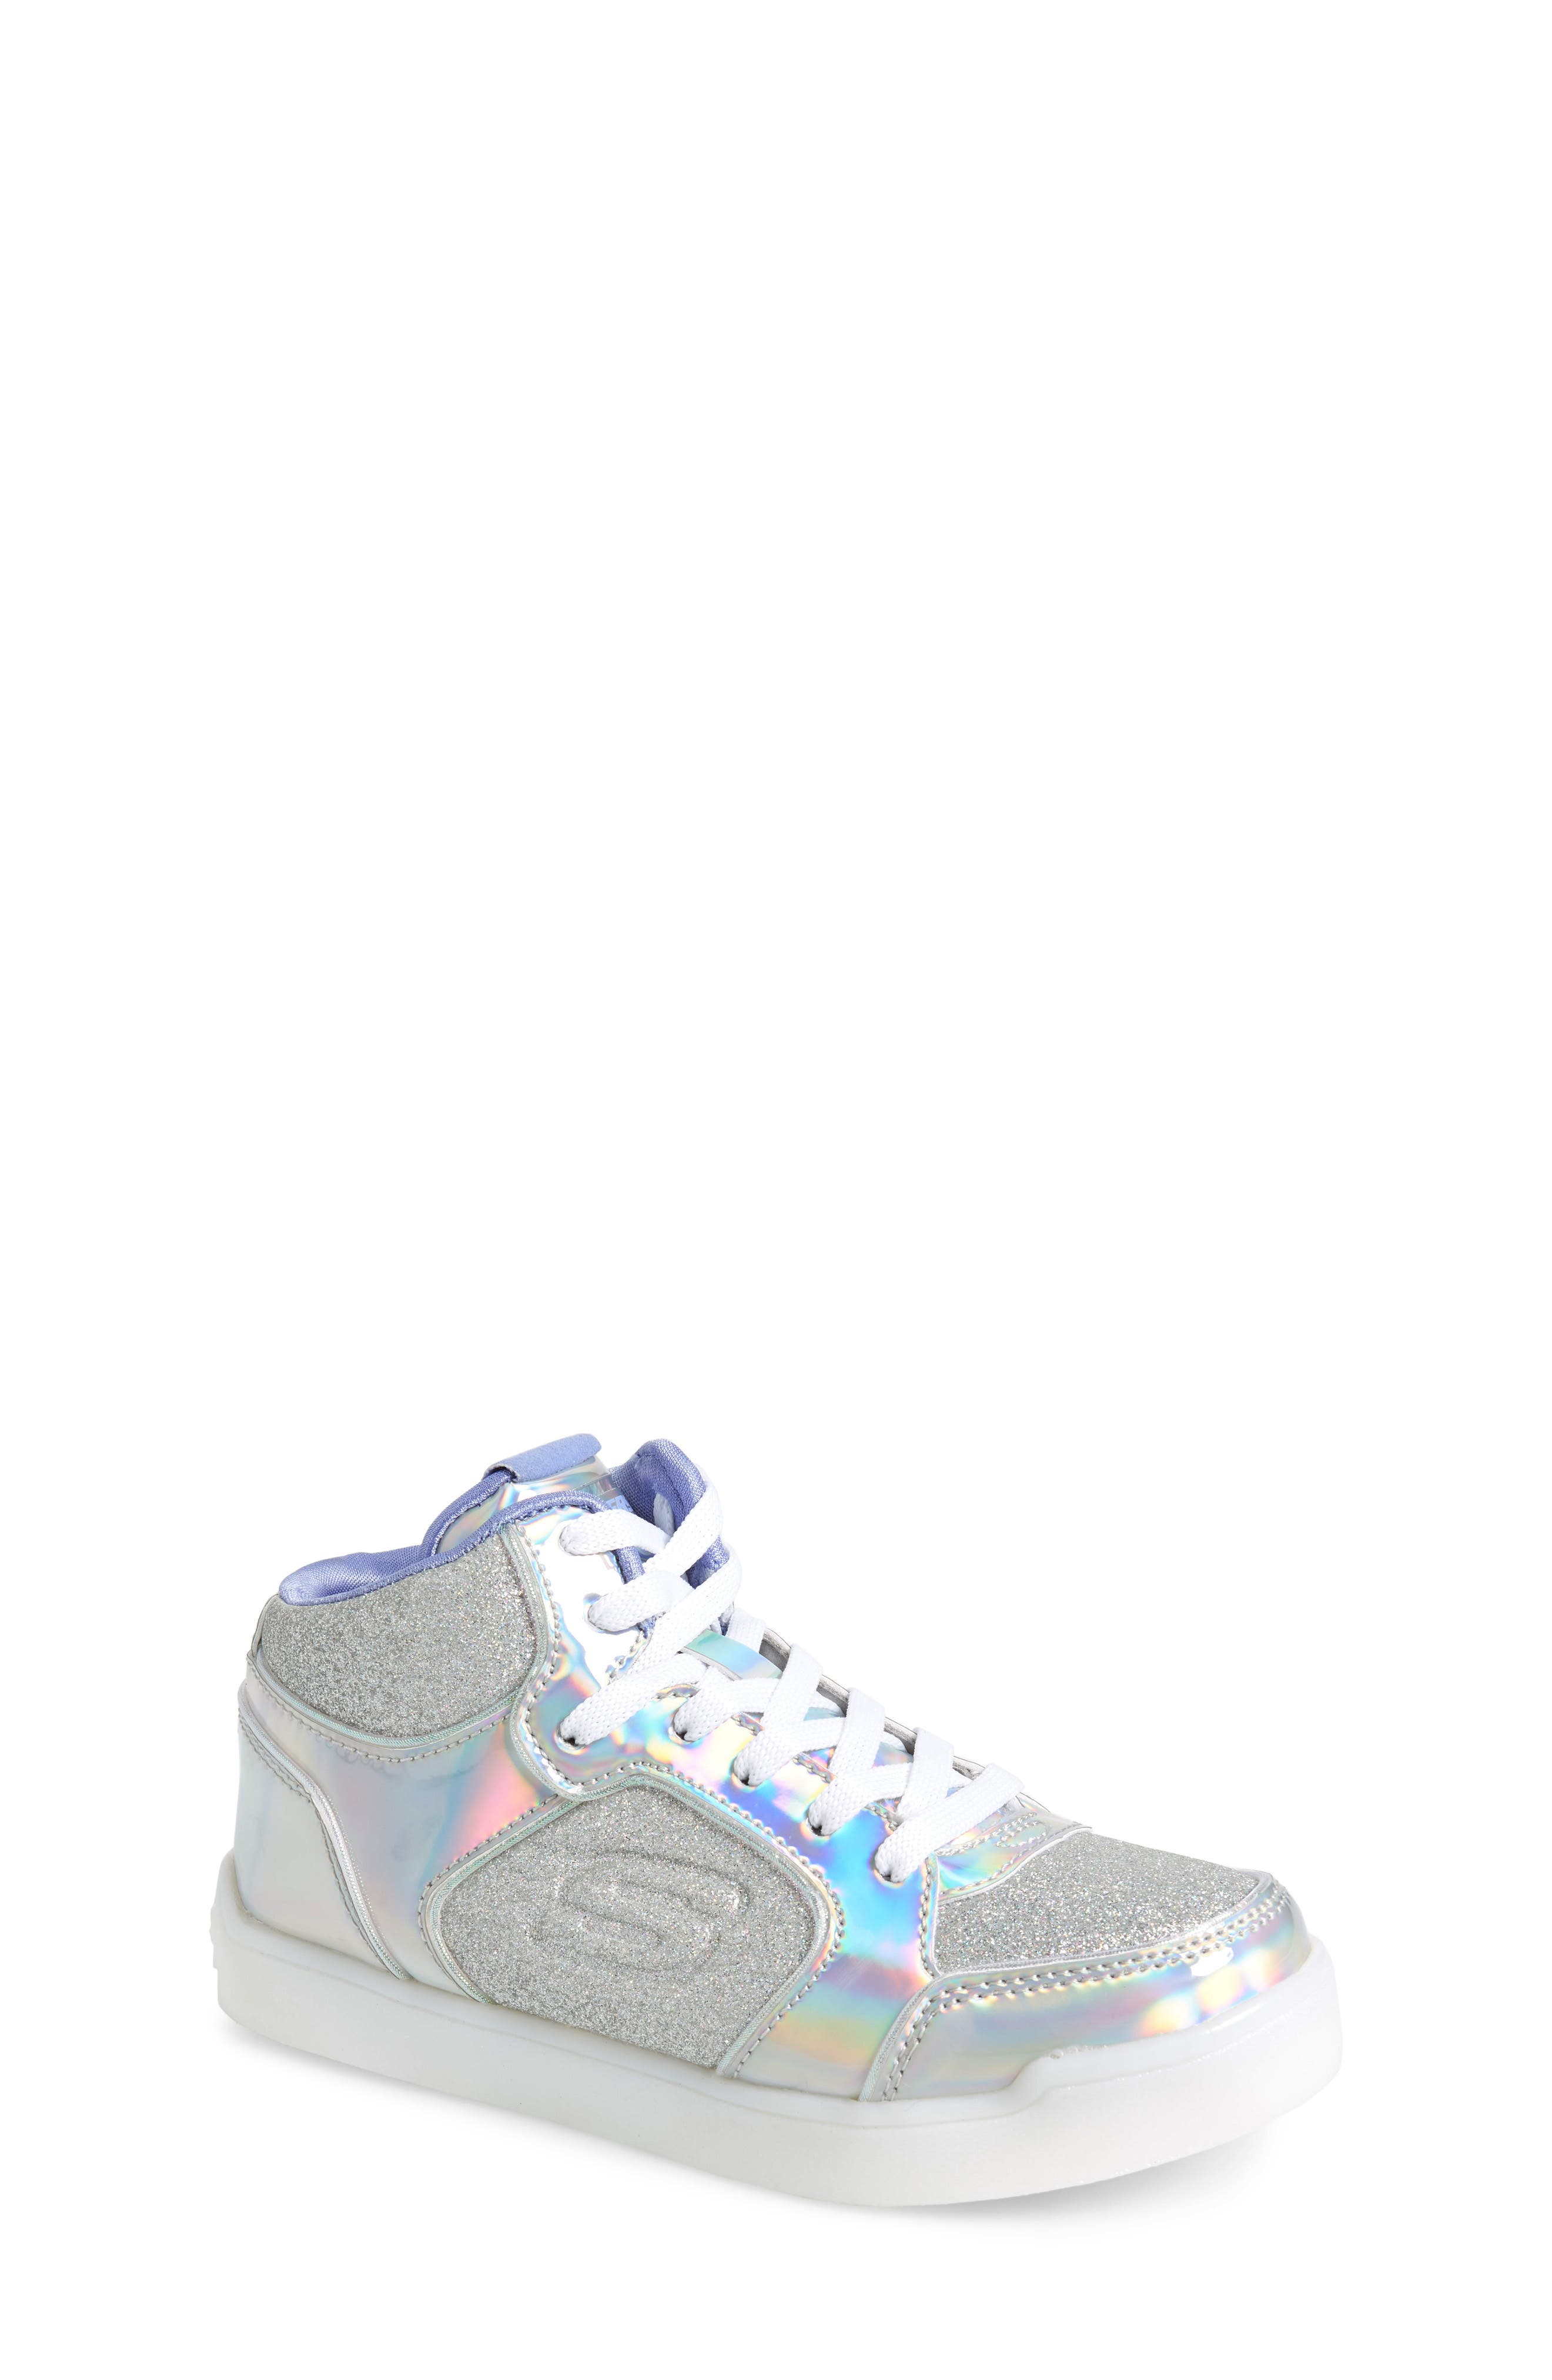 Energy Lights Pro Ultra Light-Up Sneaker,                         Main,                         color, SILVER